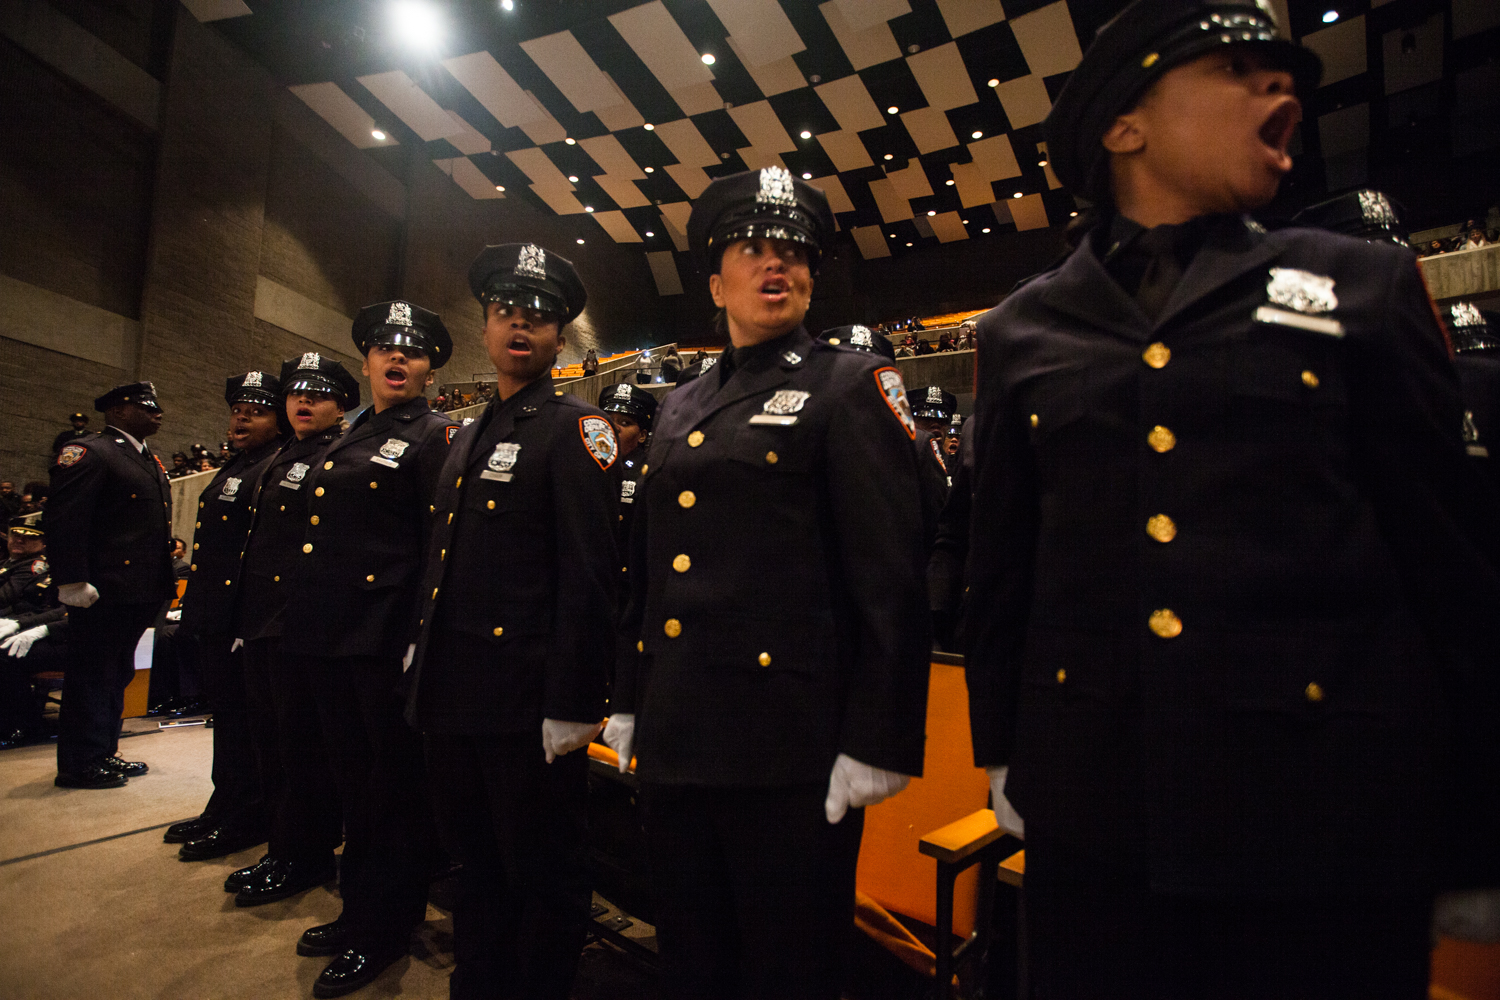 Officer at a graduation ceremony for the New York City Department of Correction. (Emily Assiran/New York Observer)